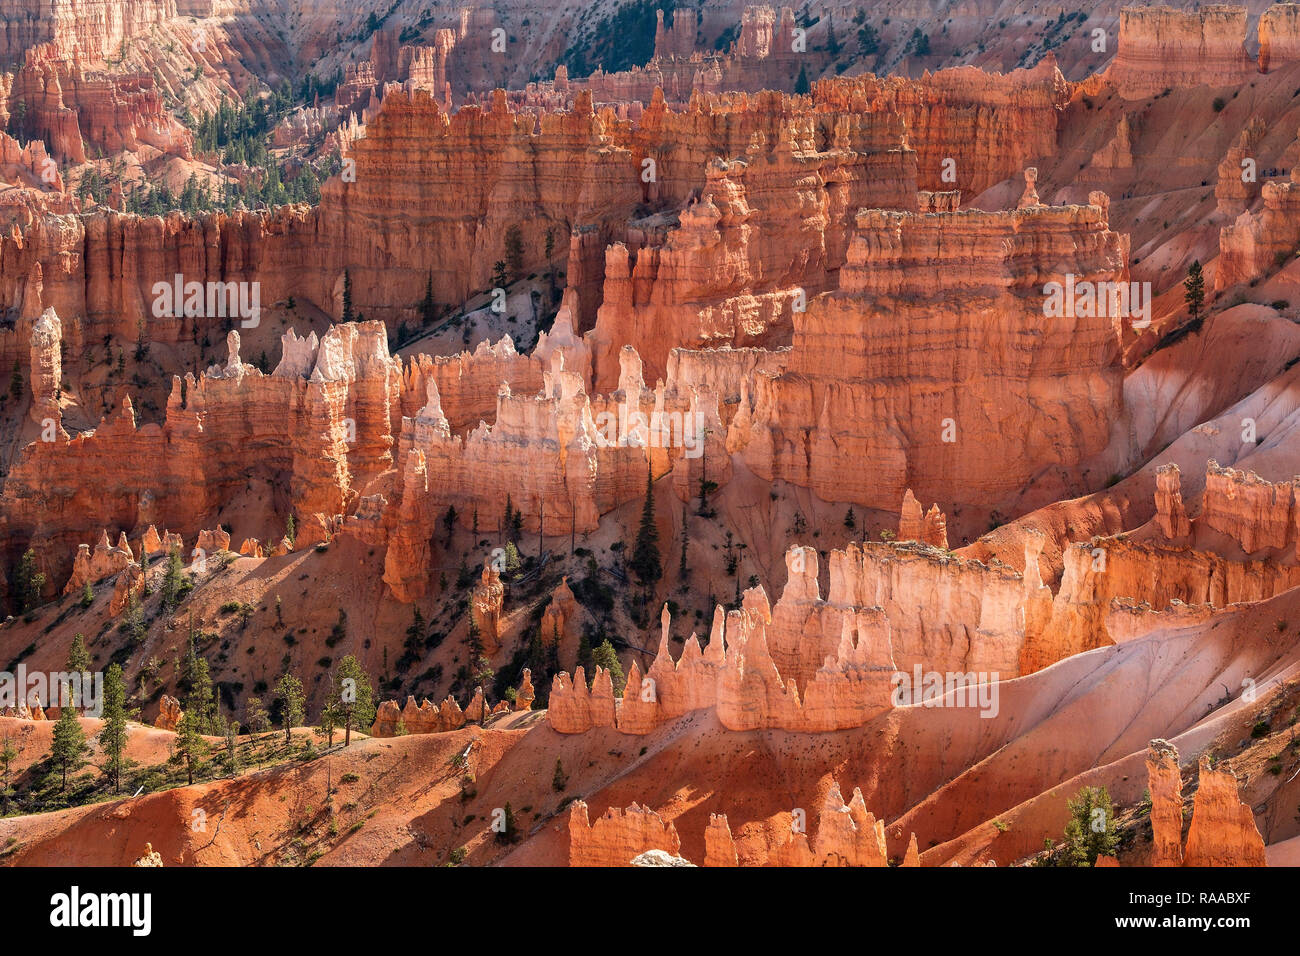 Bryce Canyon National Park, Utah, USA.  The Bryce Amphitheatre showing the Canyon Walls, Fins, Windows and Hoodoo rock formations - Stock Image